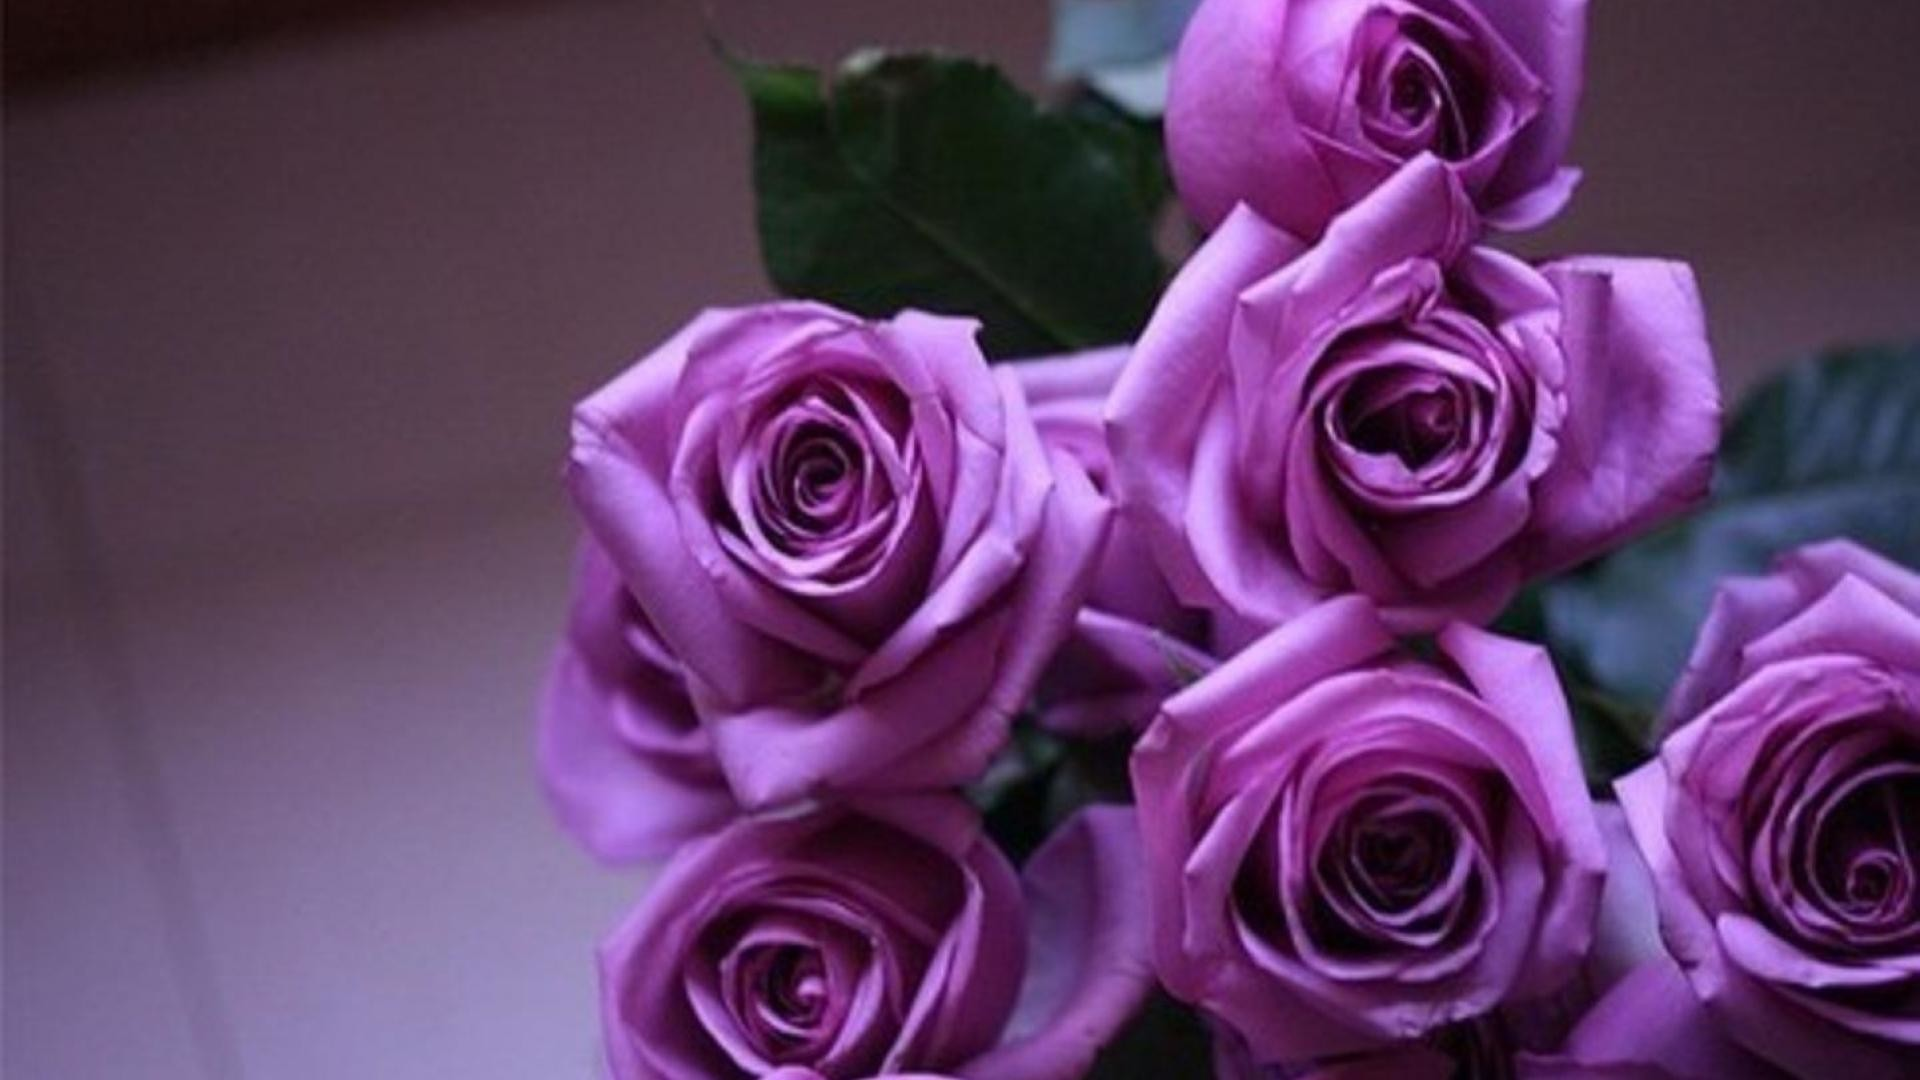 1920x1080 Download Free Purple Rose Wallpapers